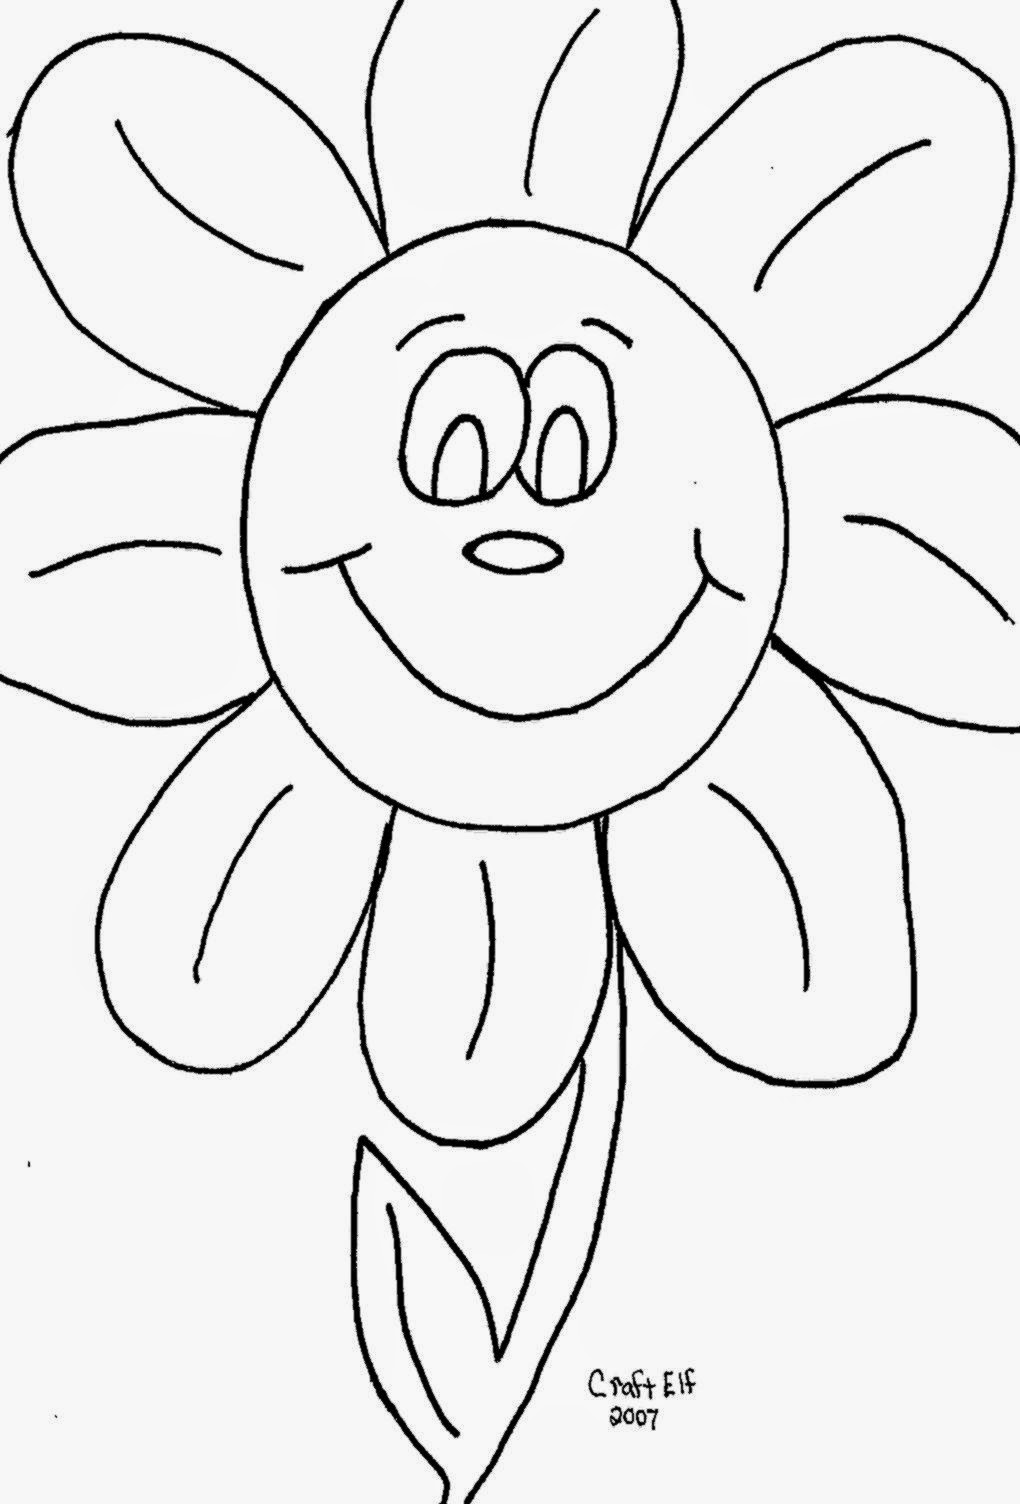 Kindergarten color sheets free coloring sheet for Free coloring pages for preschool